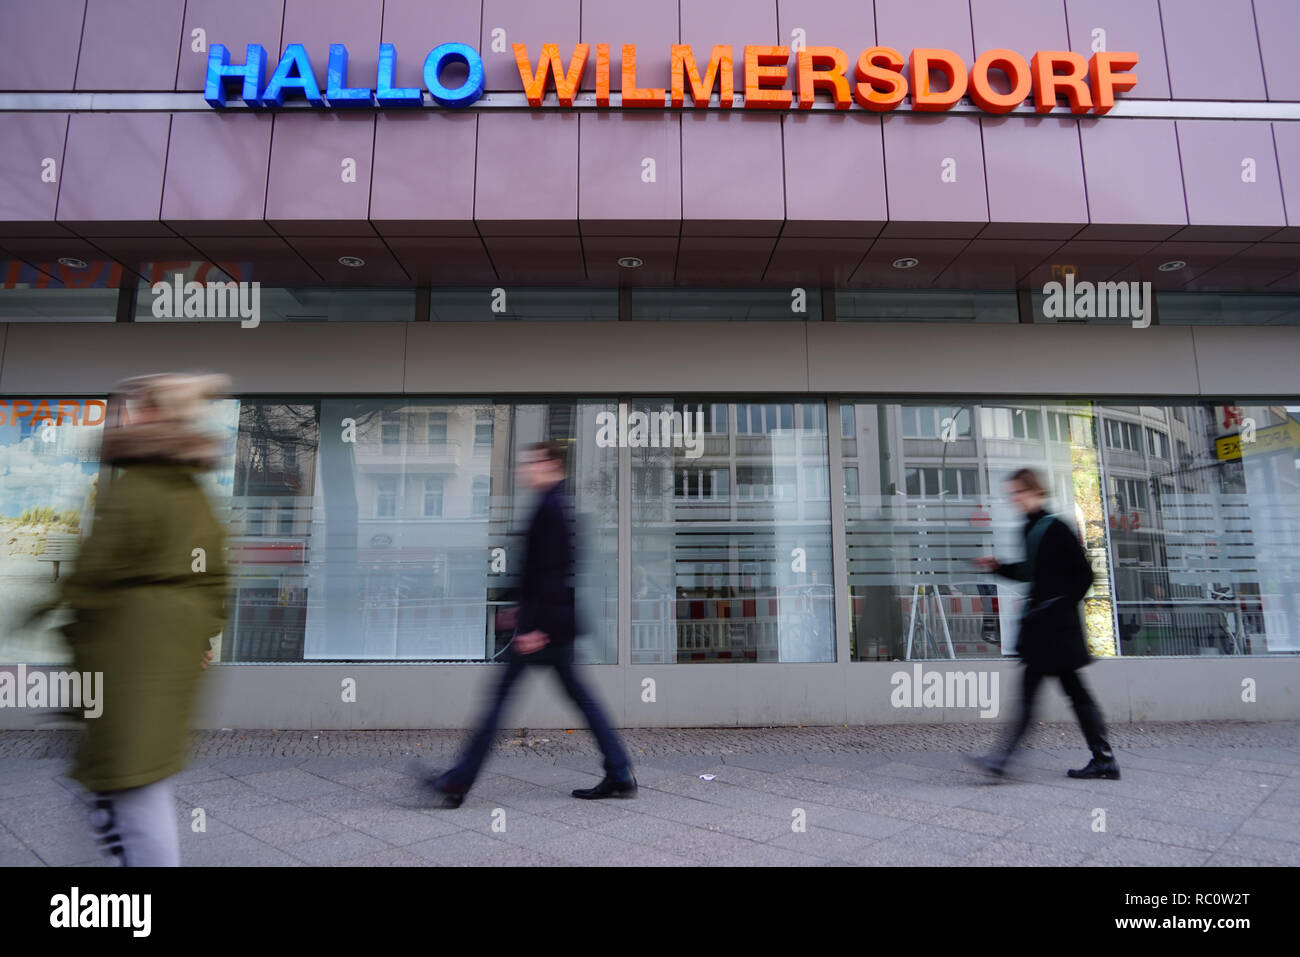 Berlin Blissestr. Hallo Wilmersdorf Stock Photo